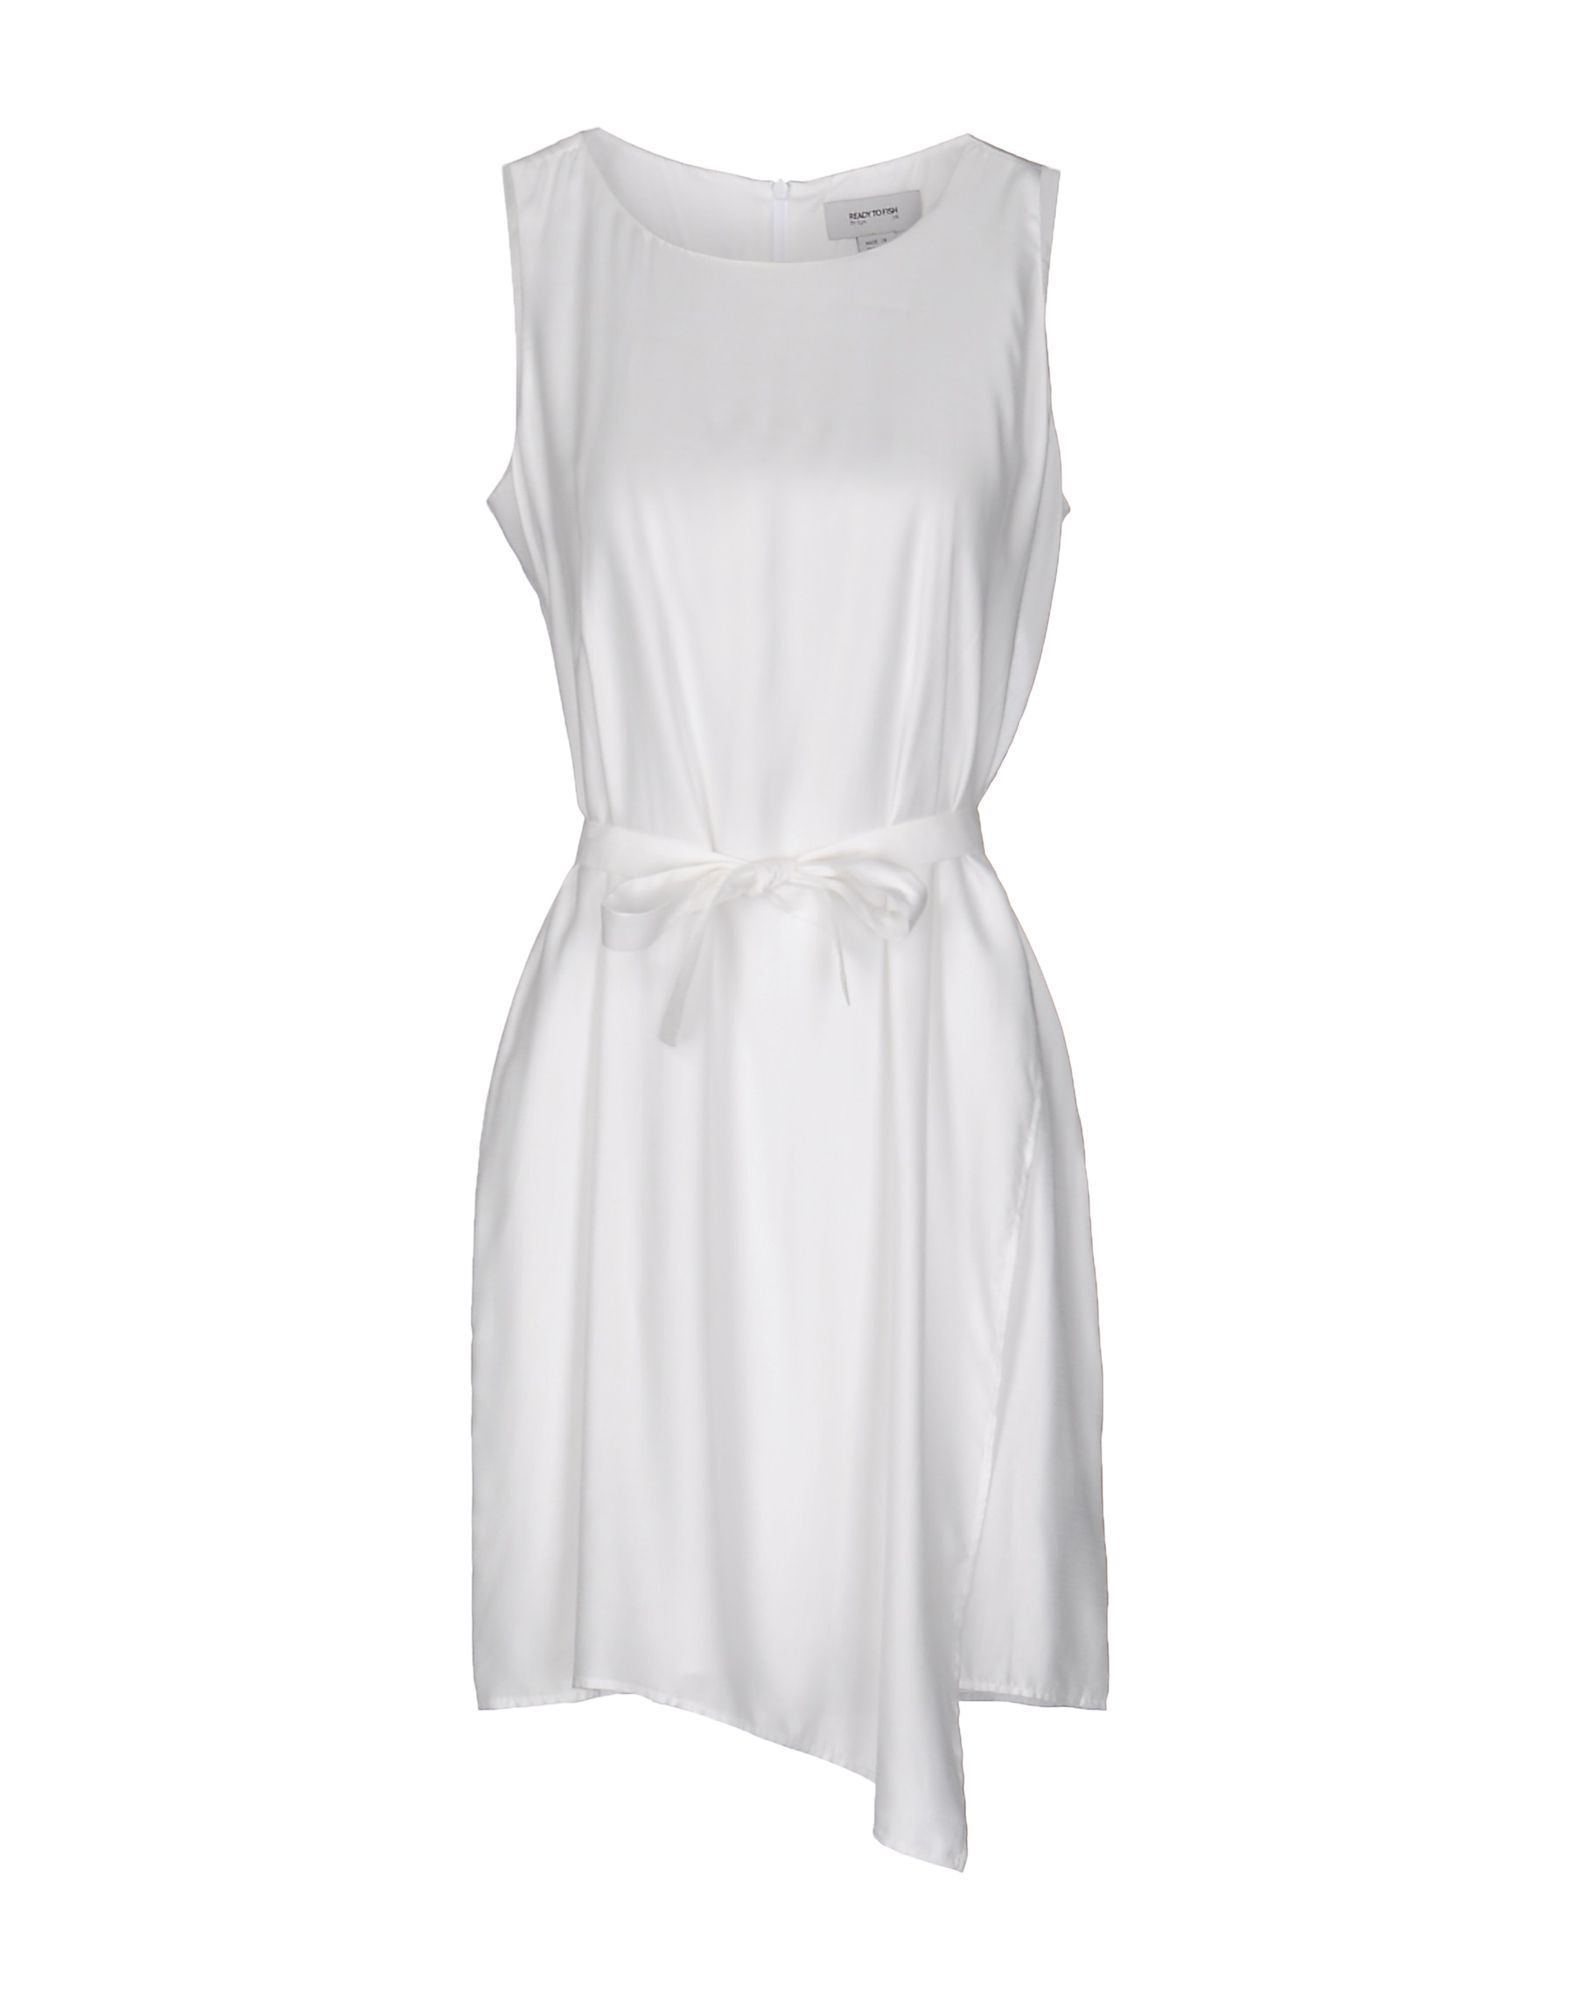 READY TO FISH BY ILJA Short Dresses in White